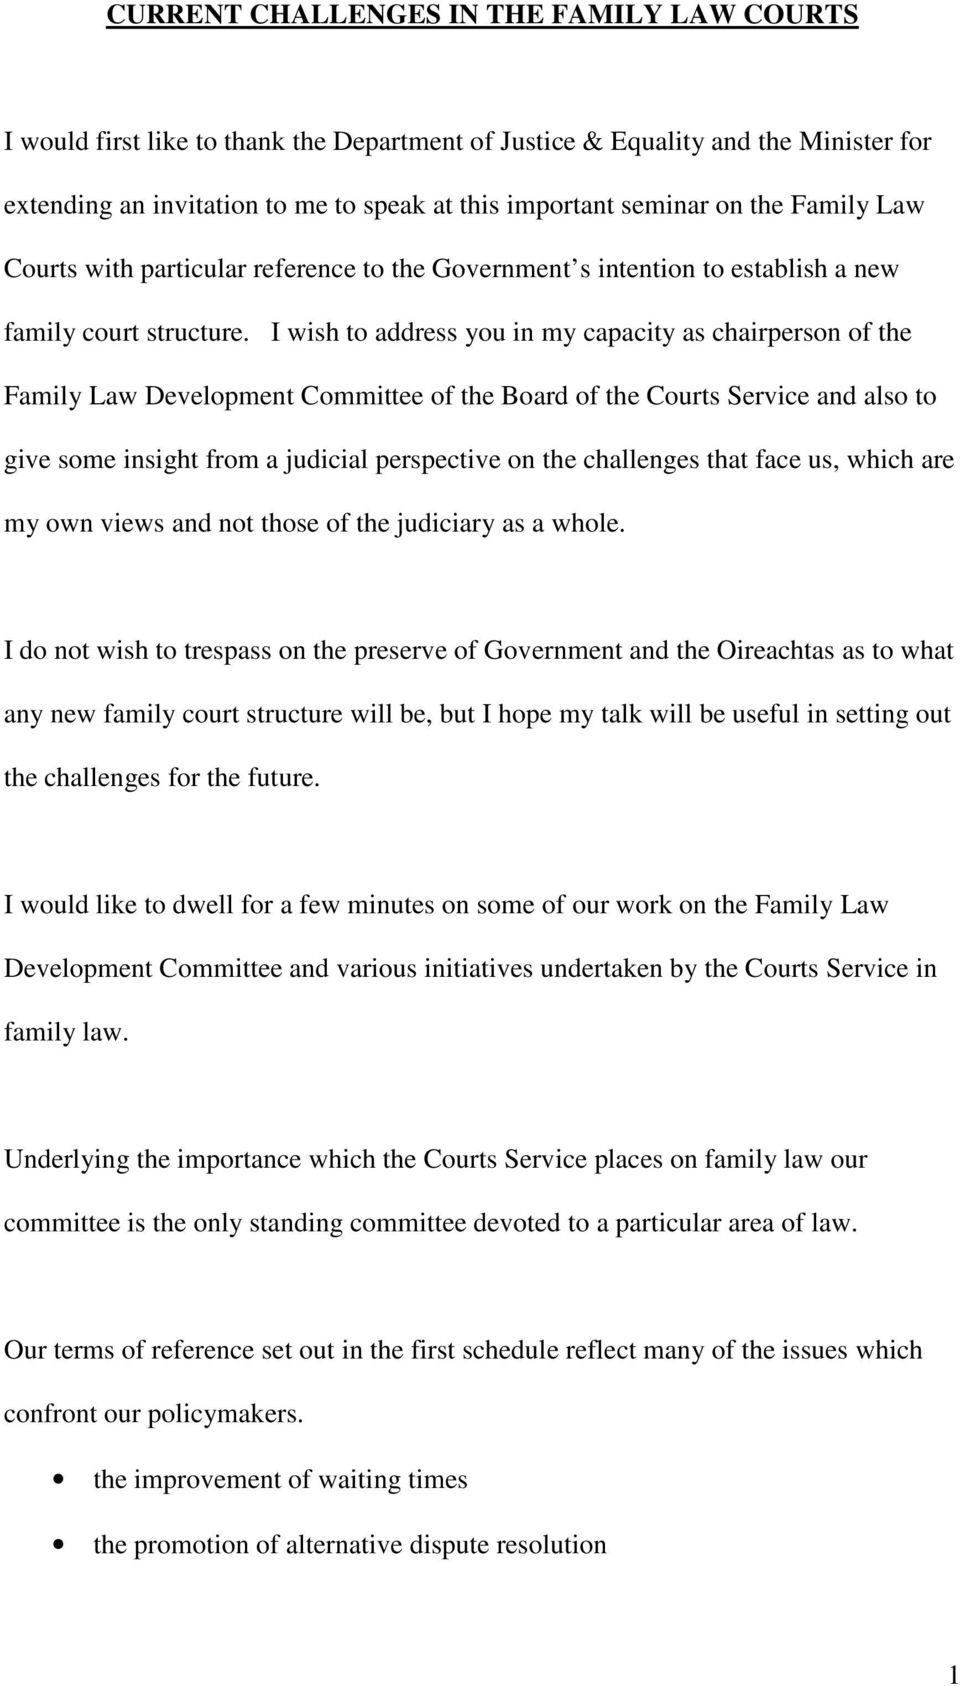 I wish to address you in my capacity as chairperson of the Family Law Development Committee of the Board of the Courts Service and also to give some insight from a judicial perspective on the